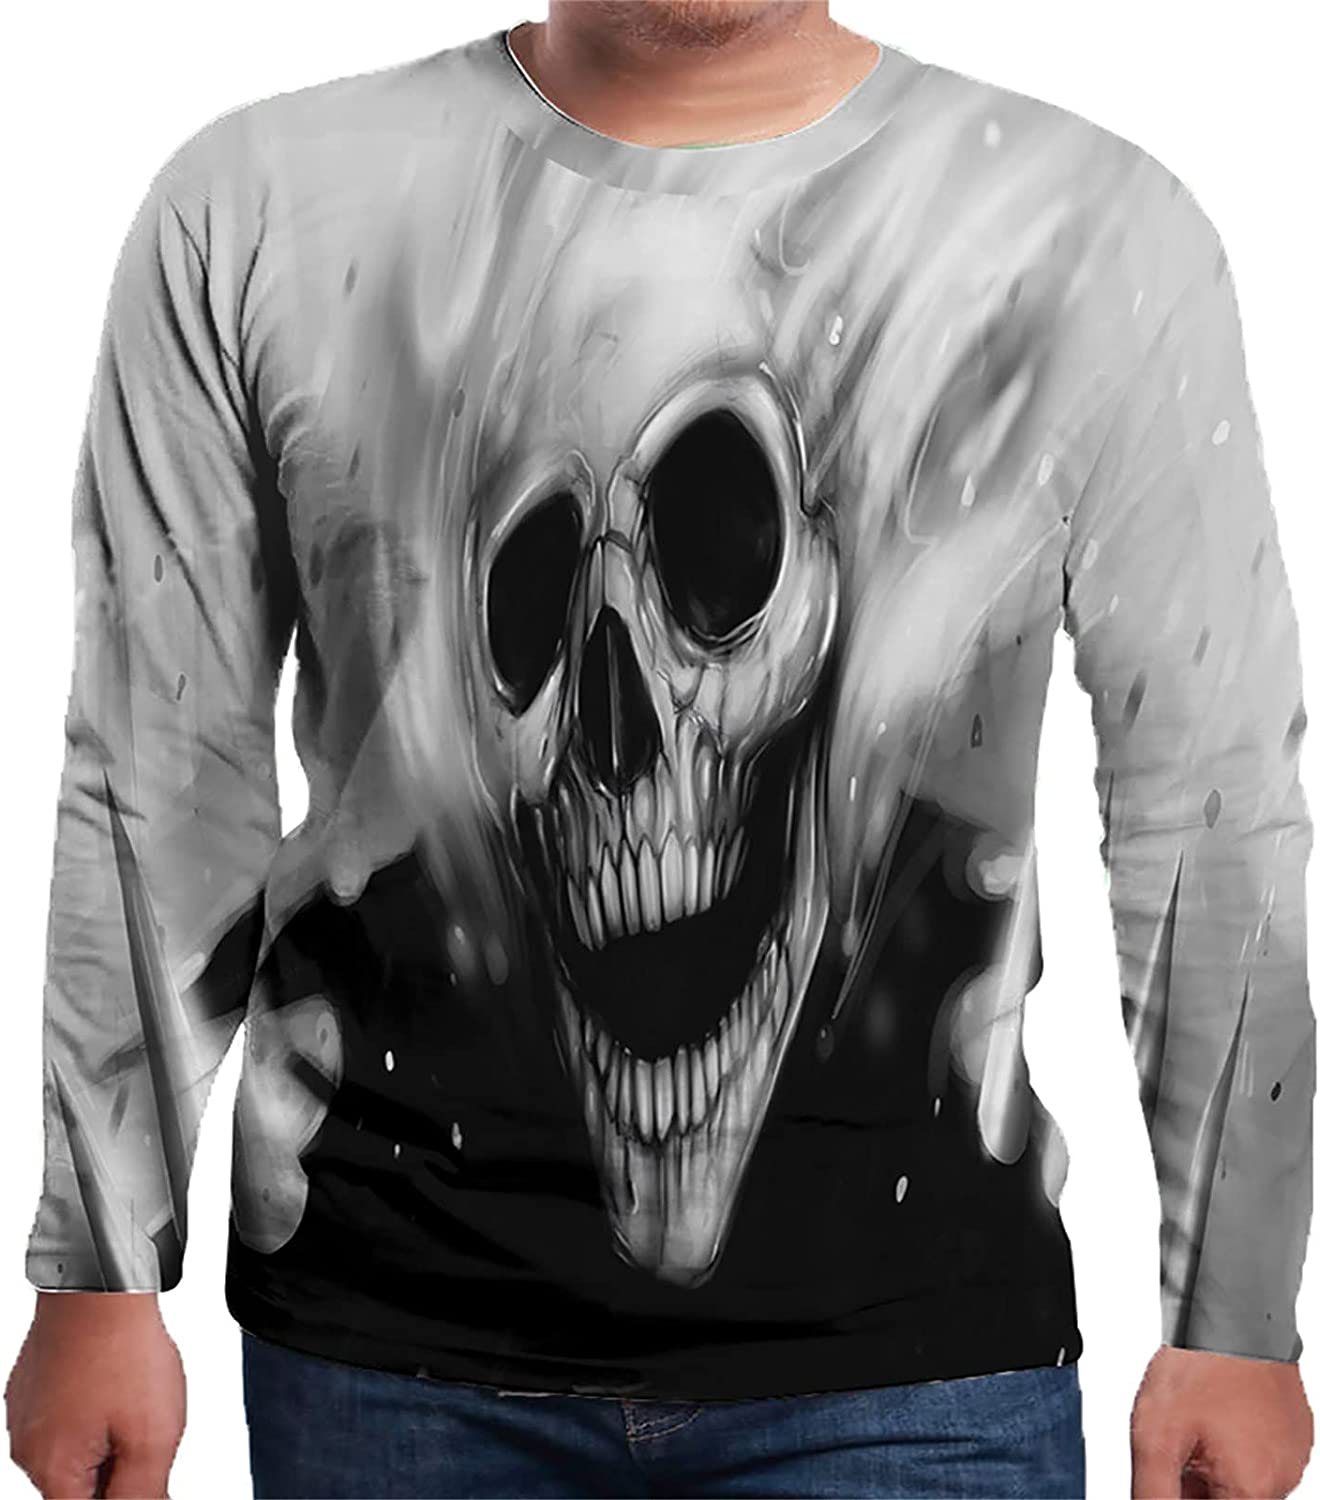 Mens Plus Size T-Shirts 3D Skull Print Shirt Tops Personality Long Sleeve Sweatshirt Graphic Tees for Halloween